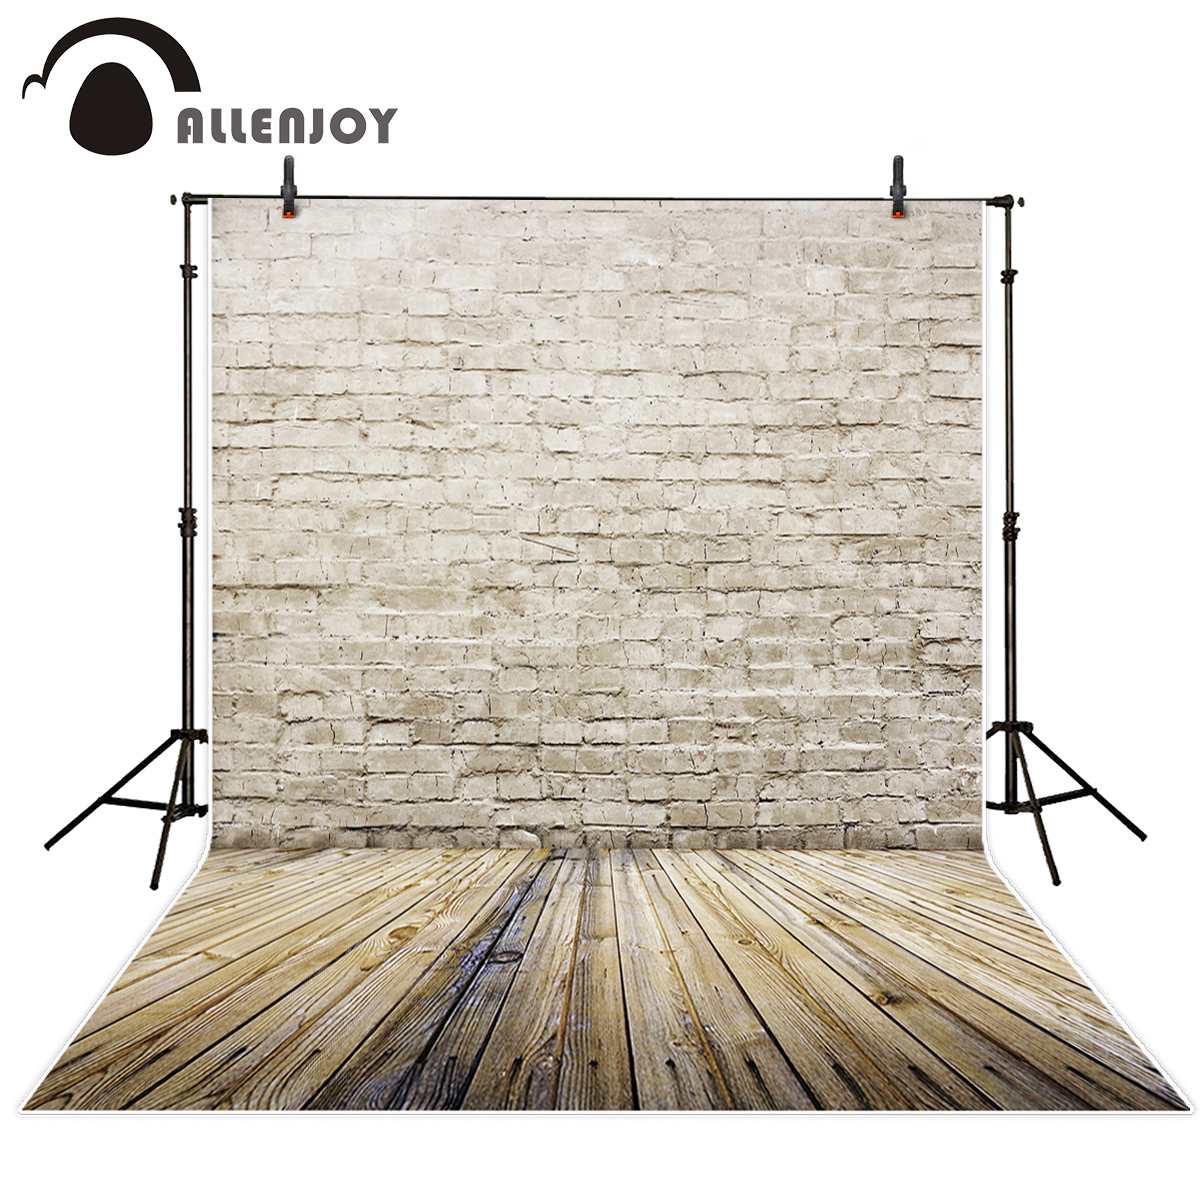 Allenjoy Brick wall Wood Gray distressed vintage Brick wall Photographic background vinyl photography backdrops photo studio parquet wood flooring allenjoy photographic background plank red roses newborn vinyl backdrops photo for studio send rolled